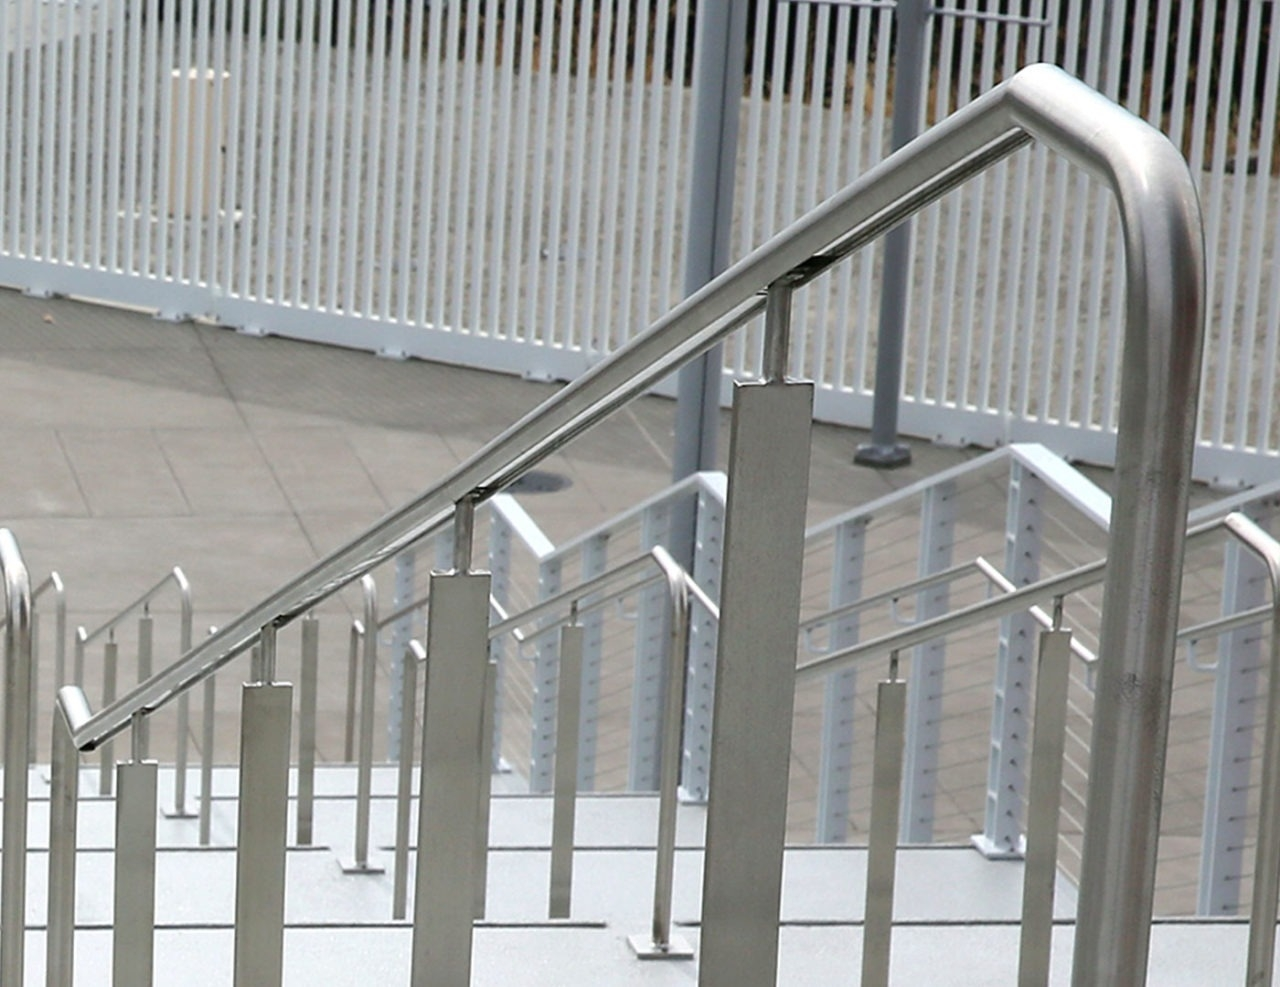 Griprail Commercial Metal Handrails Trex Commercial Products   Aluminum Steps With Handrail   Boat Dock   Wheelchair Ramp   Stair Treads   Folding   Stair System